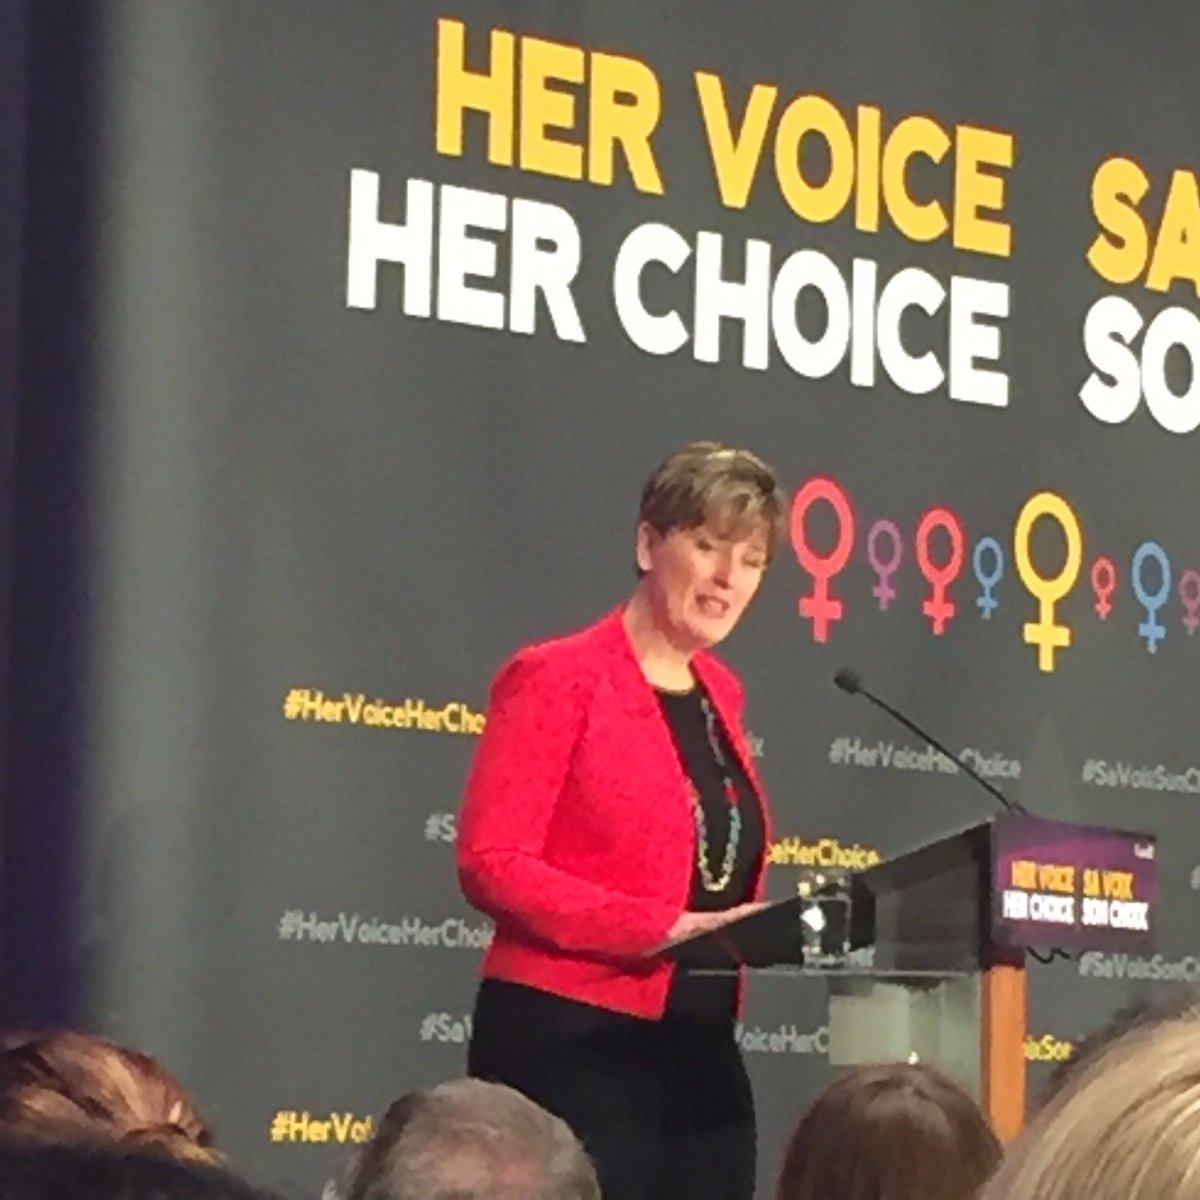 Jocelyn mackie on twitter min bibeau says sexual and reproductive bibeau says sexual and reproductive health rights for women girls will be at centre of canadadev approach to development iwd2017 ccuart Image collections